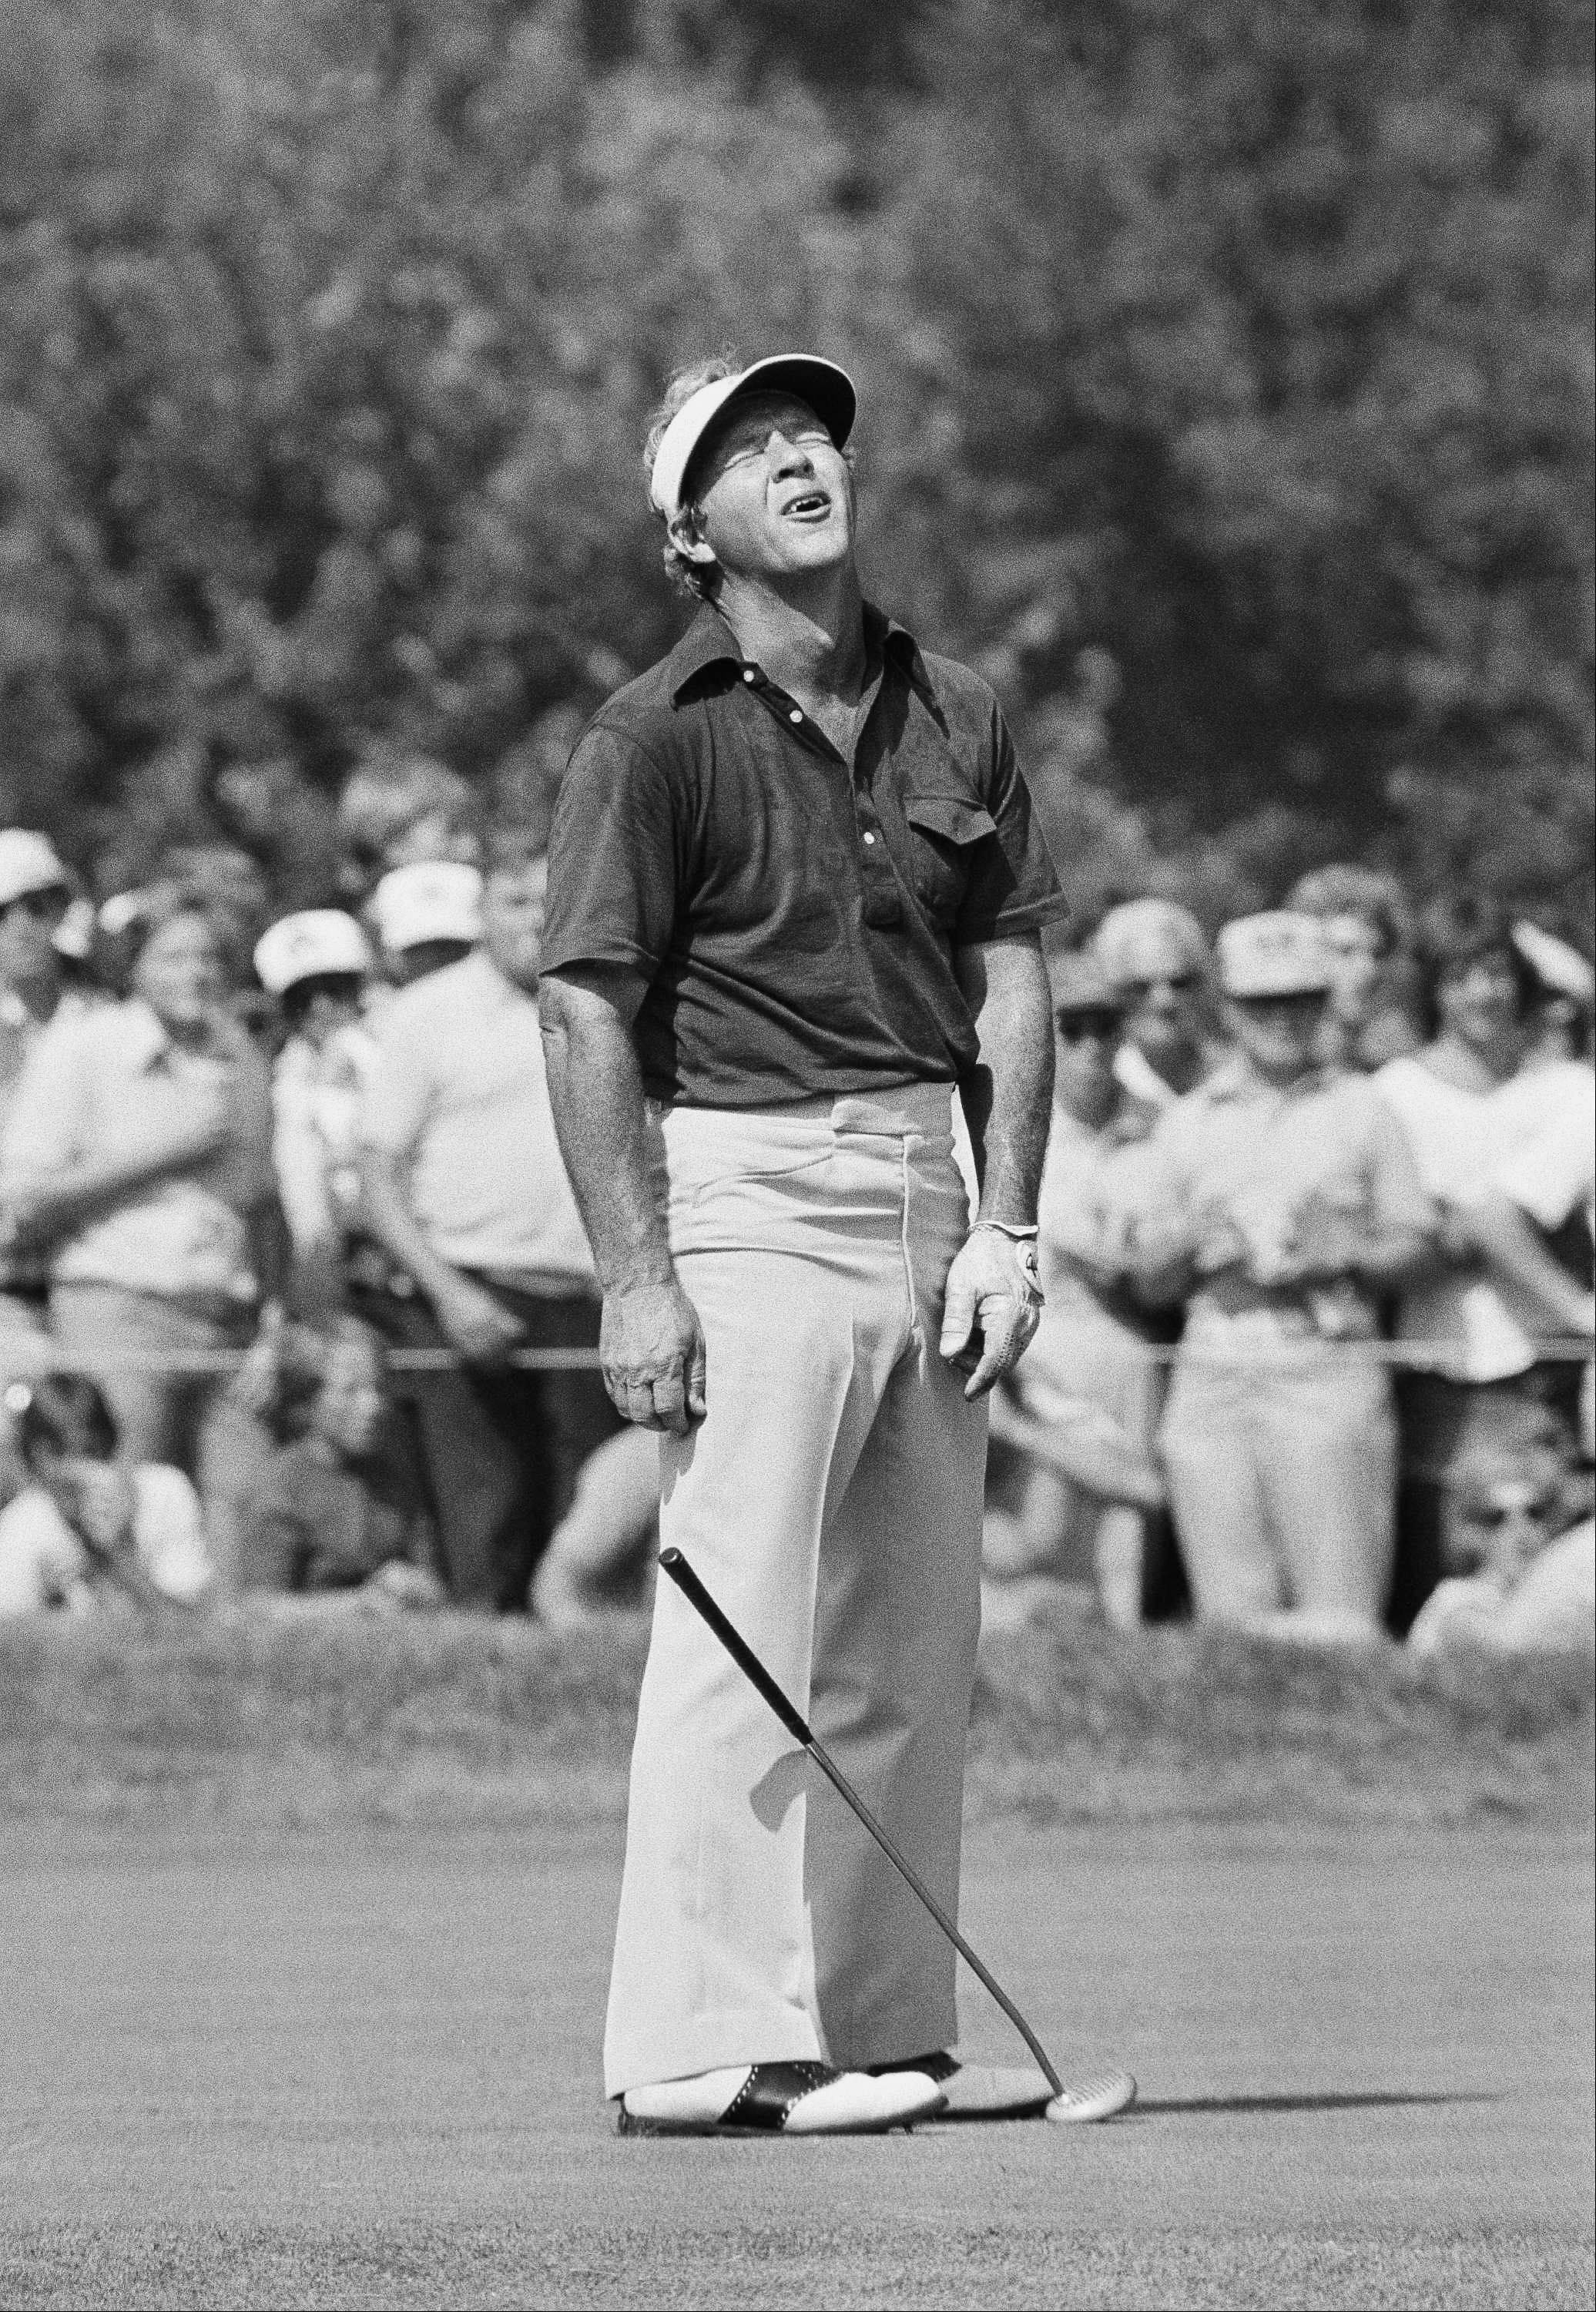 Arnold Palmer leaves nothing unsaid as he presented this appearance when he missed a putt that gave him a bogey on the par four, 11th hole at Medinah Country Club, Medinah, Ill., June 19, 1975, in the first round of the U. S. Open. Palmer, of Ligonier Pa., was trailing the leaders by one stroke when he missed this putt.